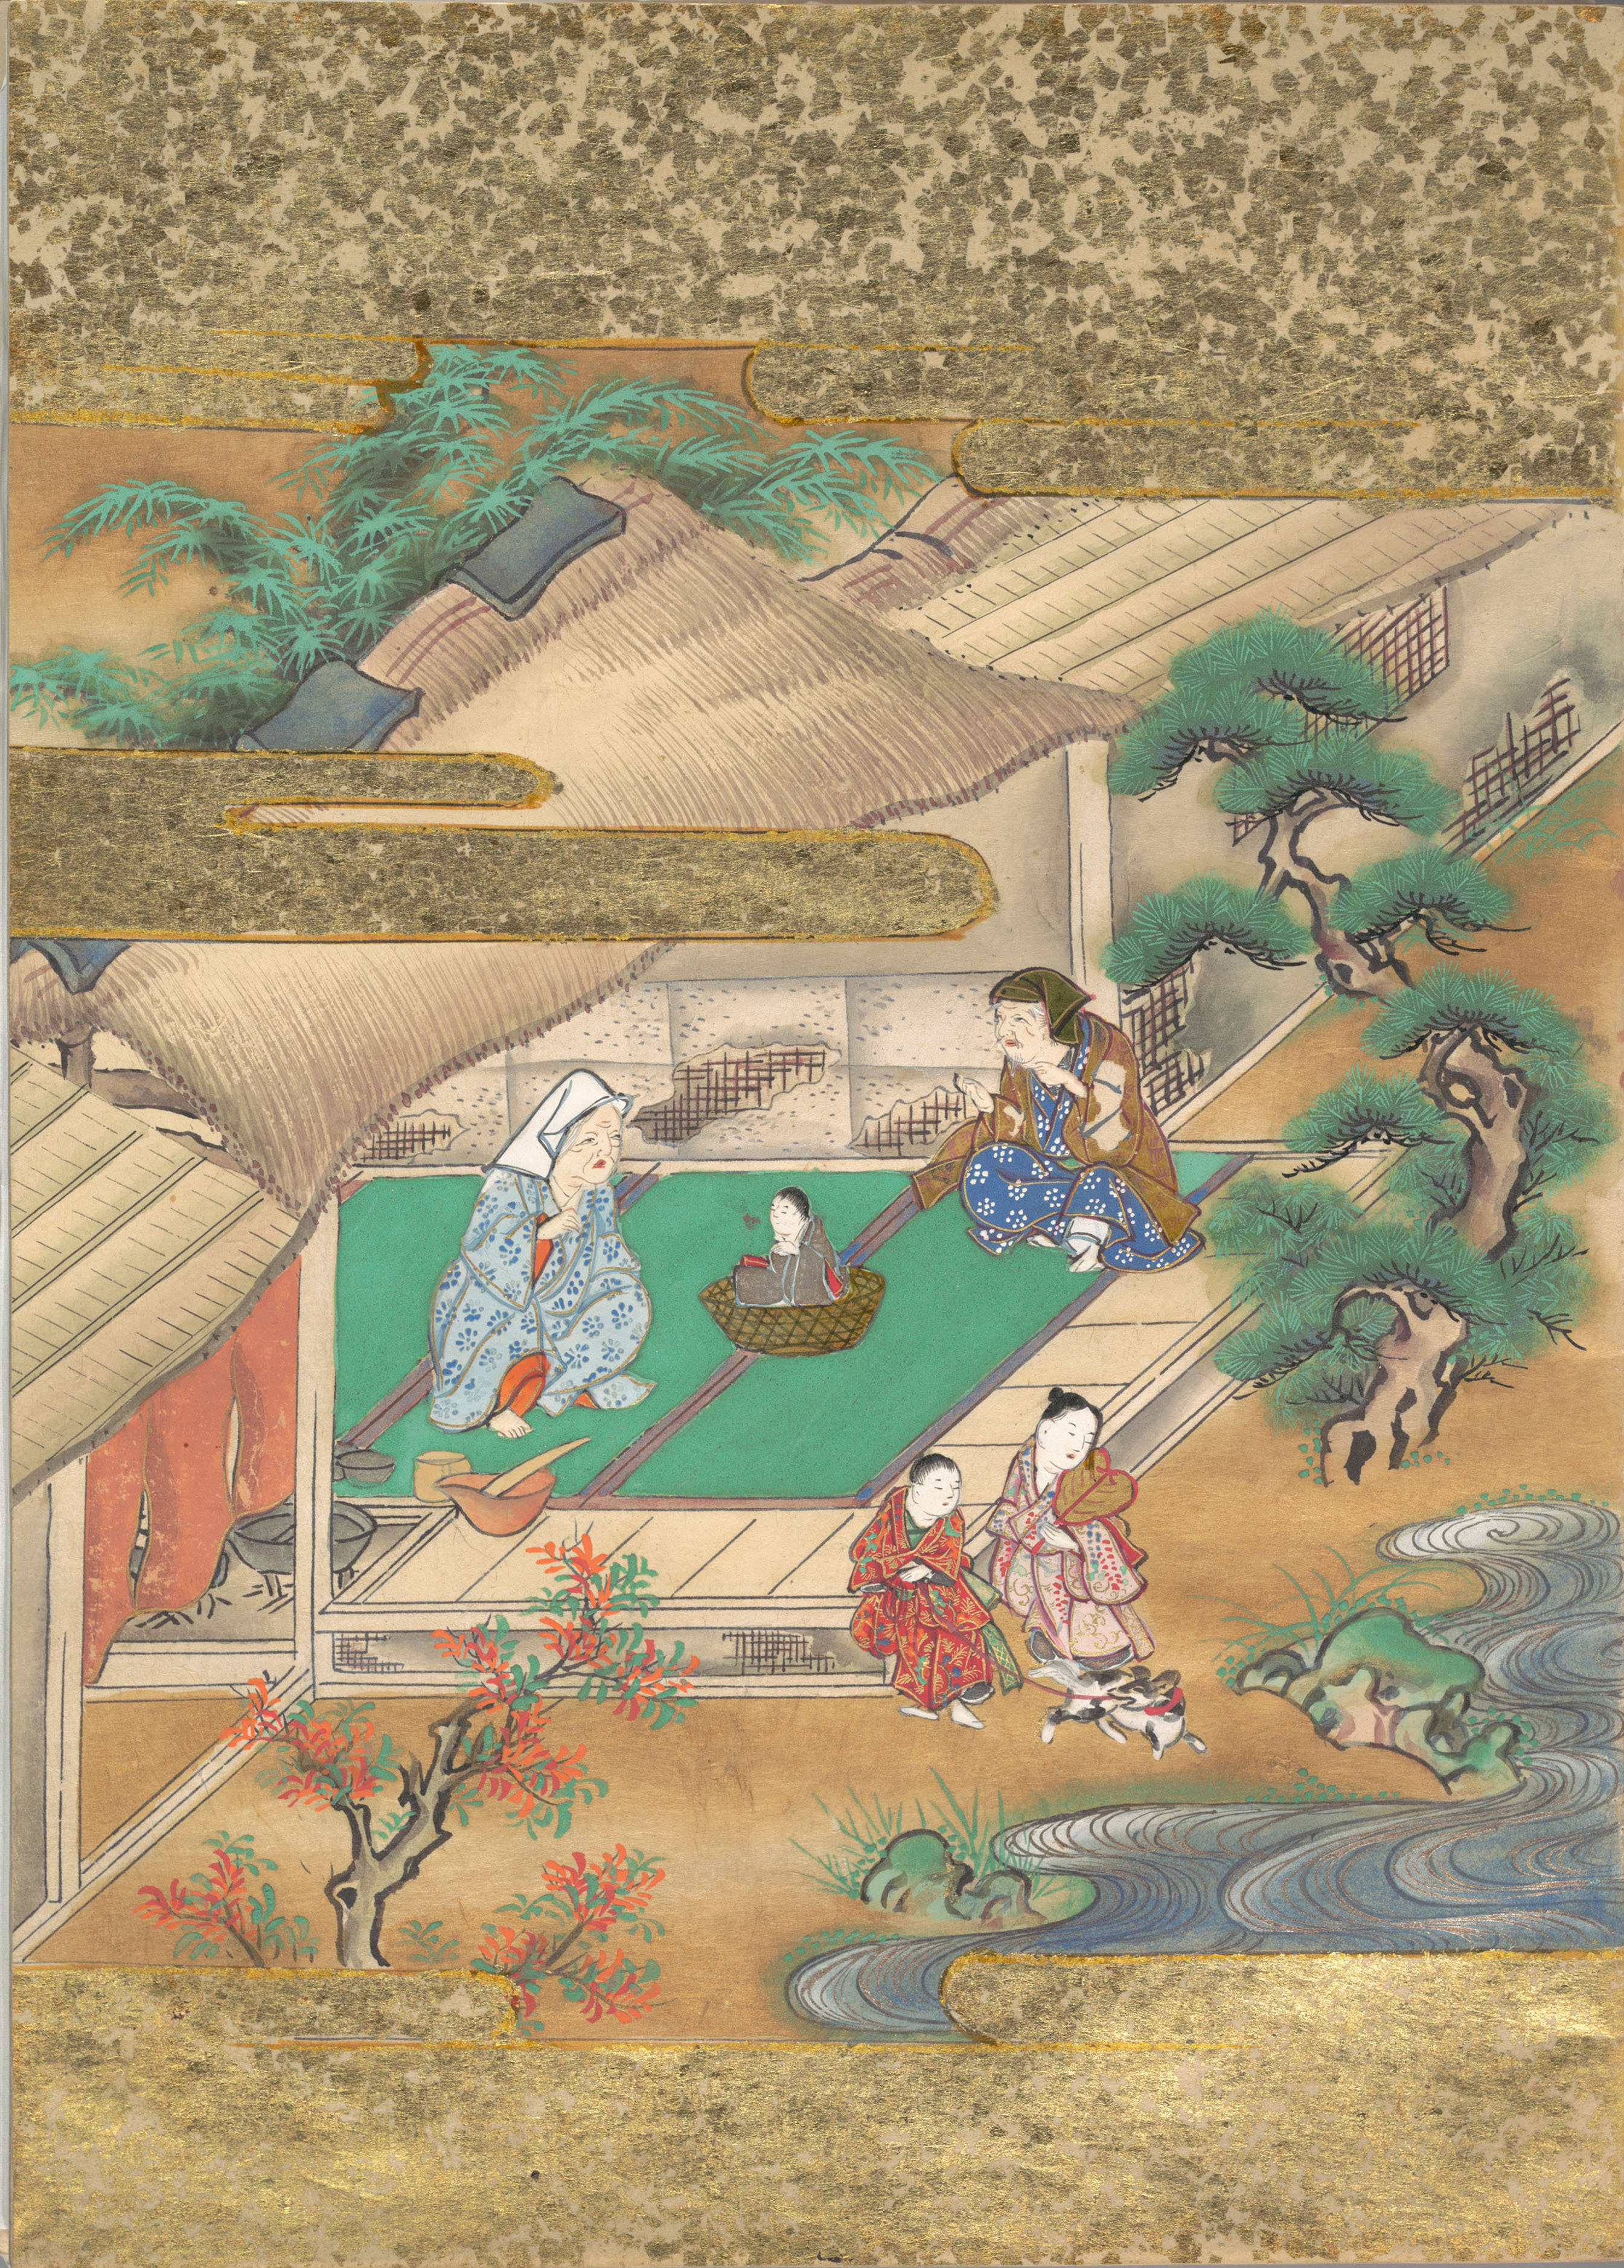 Lit Bambou Fly The Tale Of The Bamboo Cutter Wikipedia